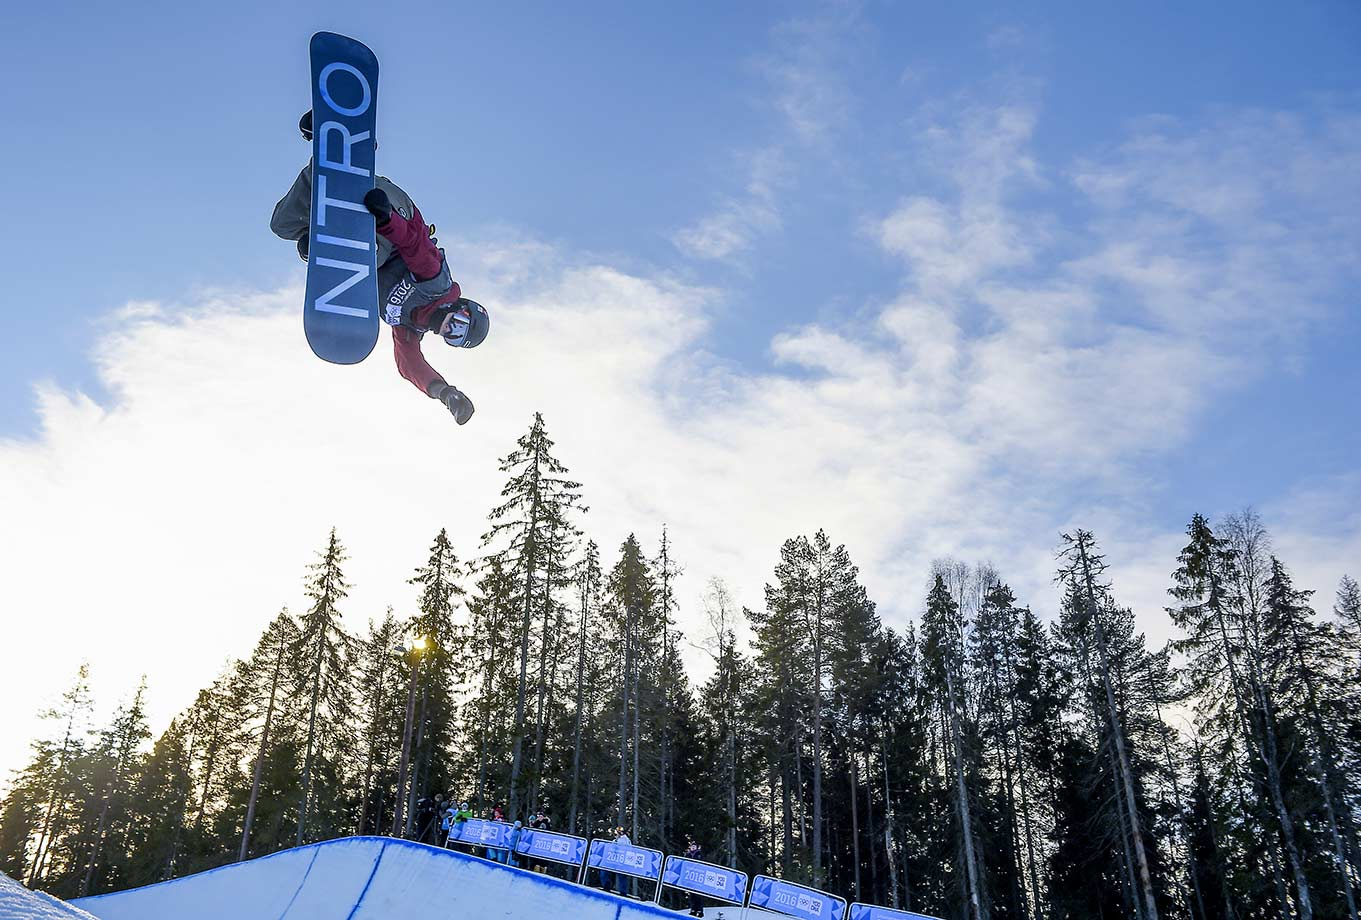 Gian Andrea Sutter (SUI) competes in the Men's Snowboard Halfpipe Finals at Oslo Vinterpark Halfpipe on Feb. 14, 2016 during the Winter Youth Olympic Games in Lillehammer, Norway.